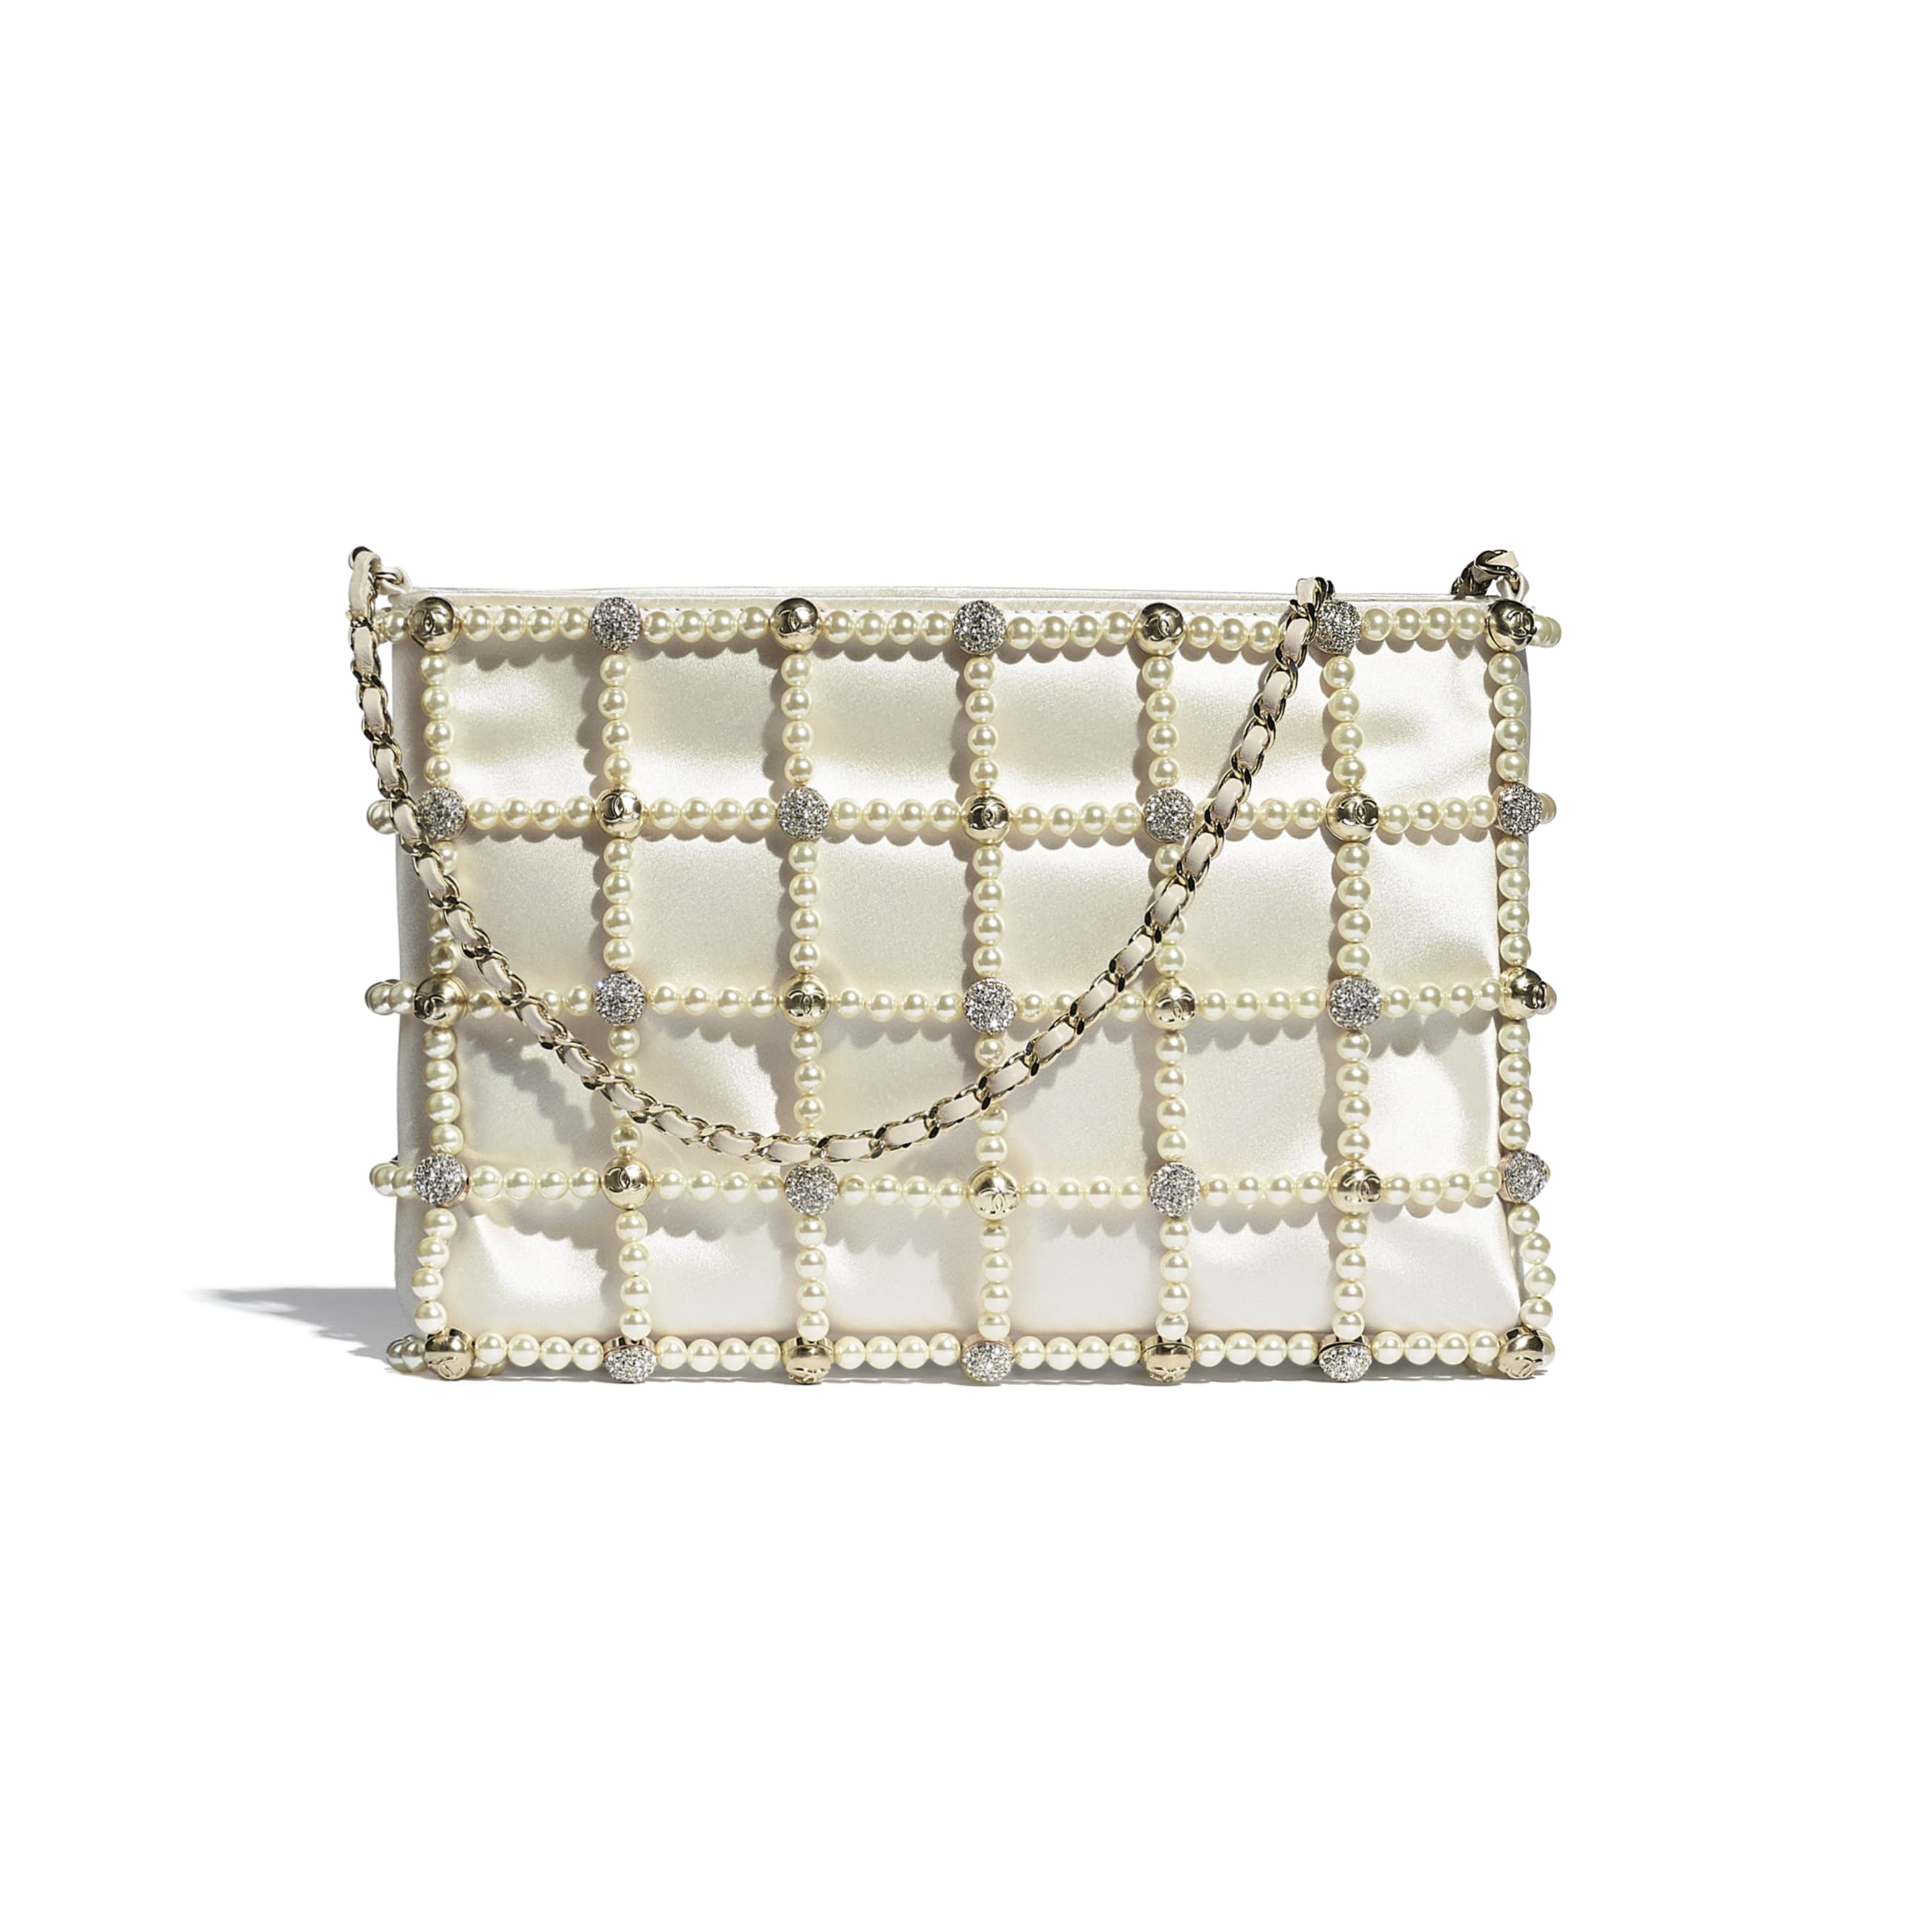 Clutch - White - Satin, Glass Pearls, Strass & Gold-Tone Metal - CHANEL - Default view - see standard sized version